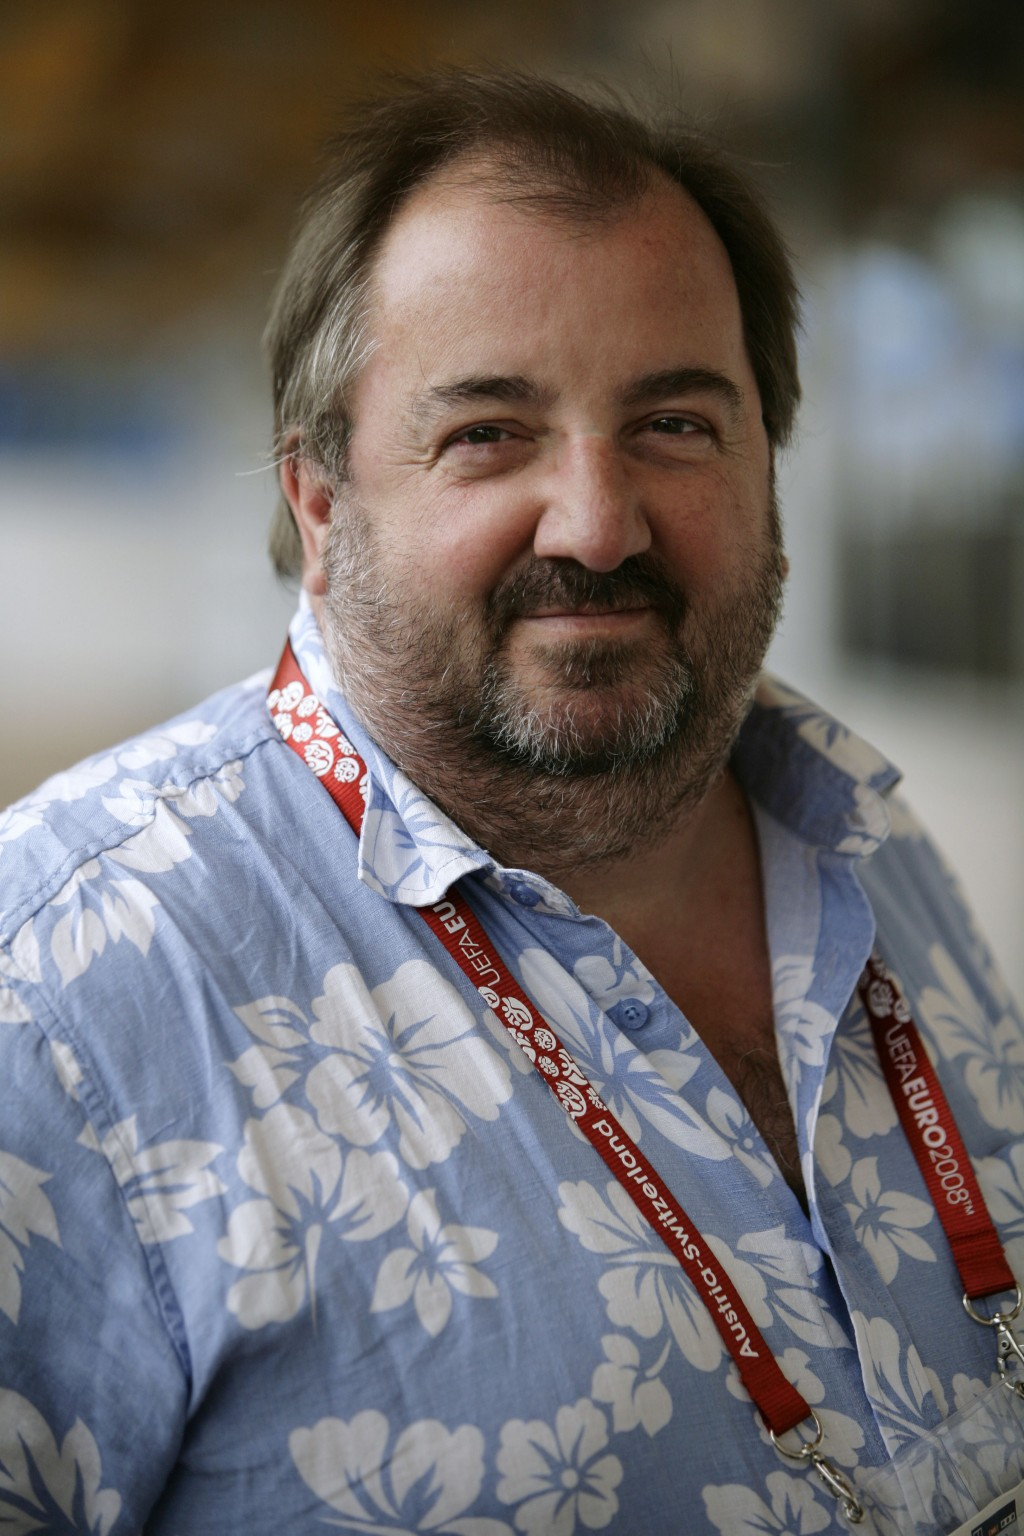 This 2008 file photo shows Simon Haydon, former Associated Press international sports editor. Haydon, who shaped The Associated Press' coverage of Wor...